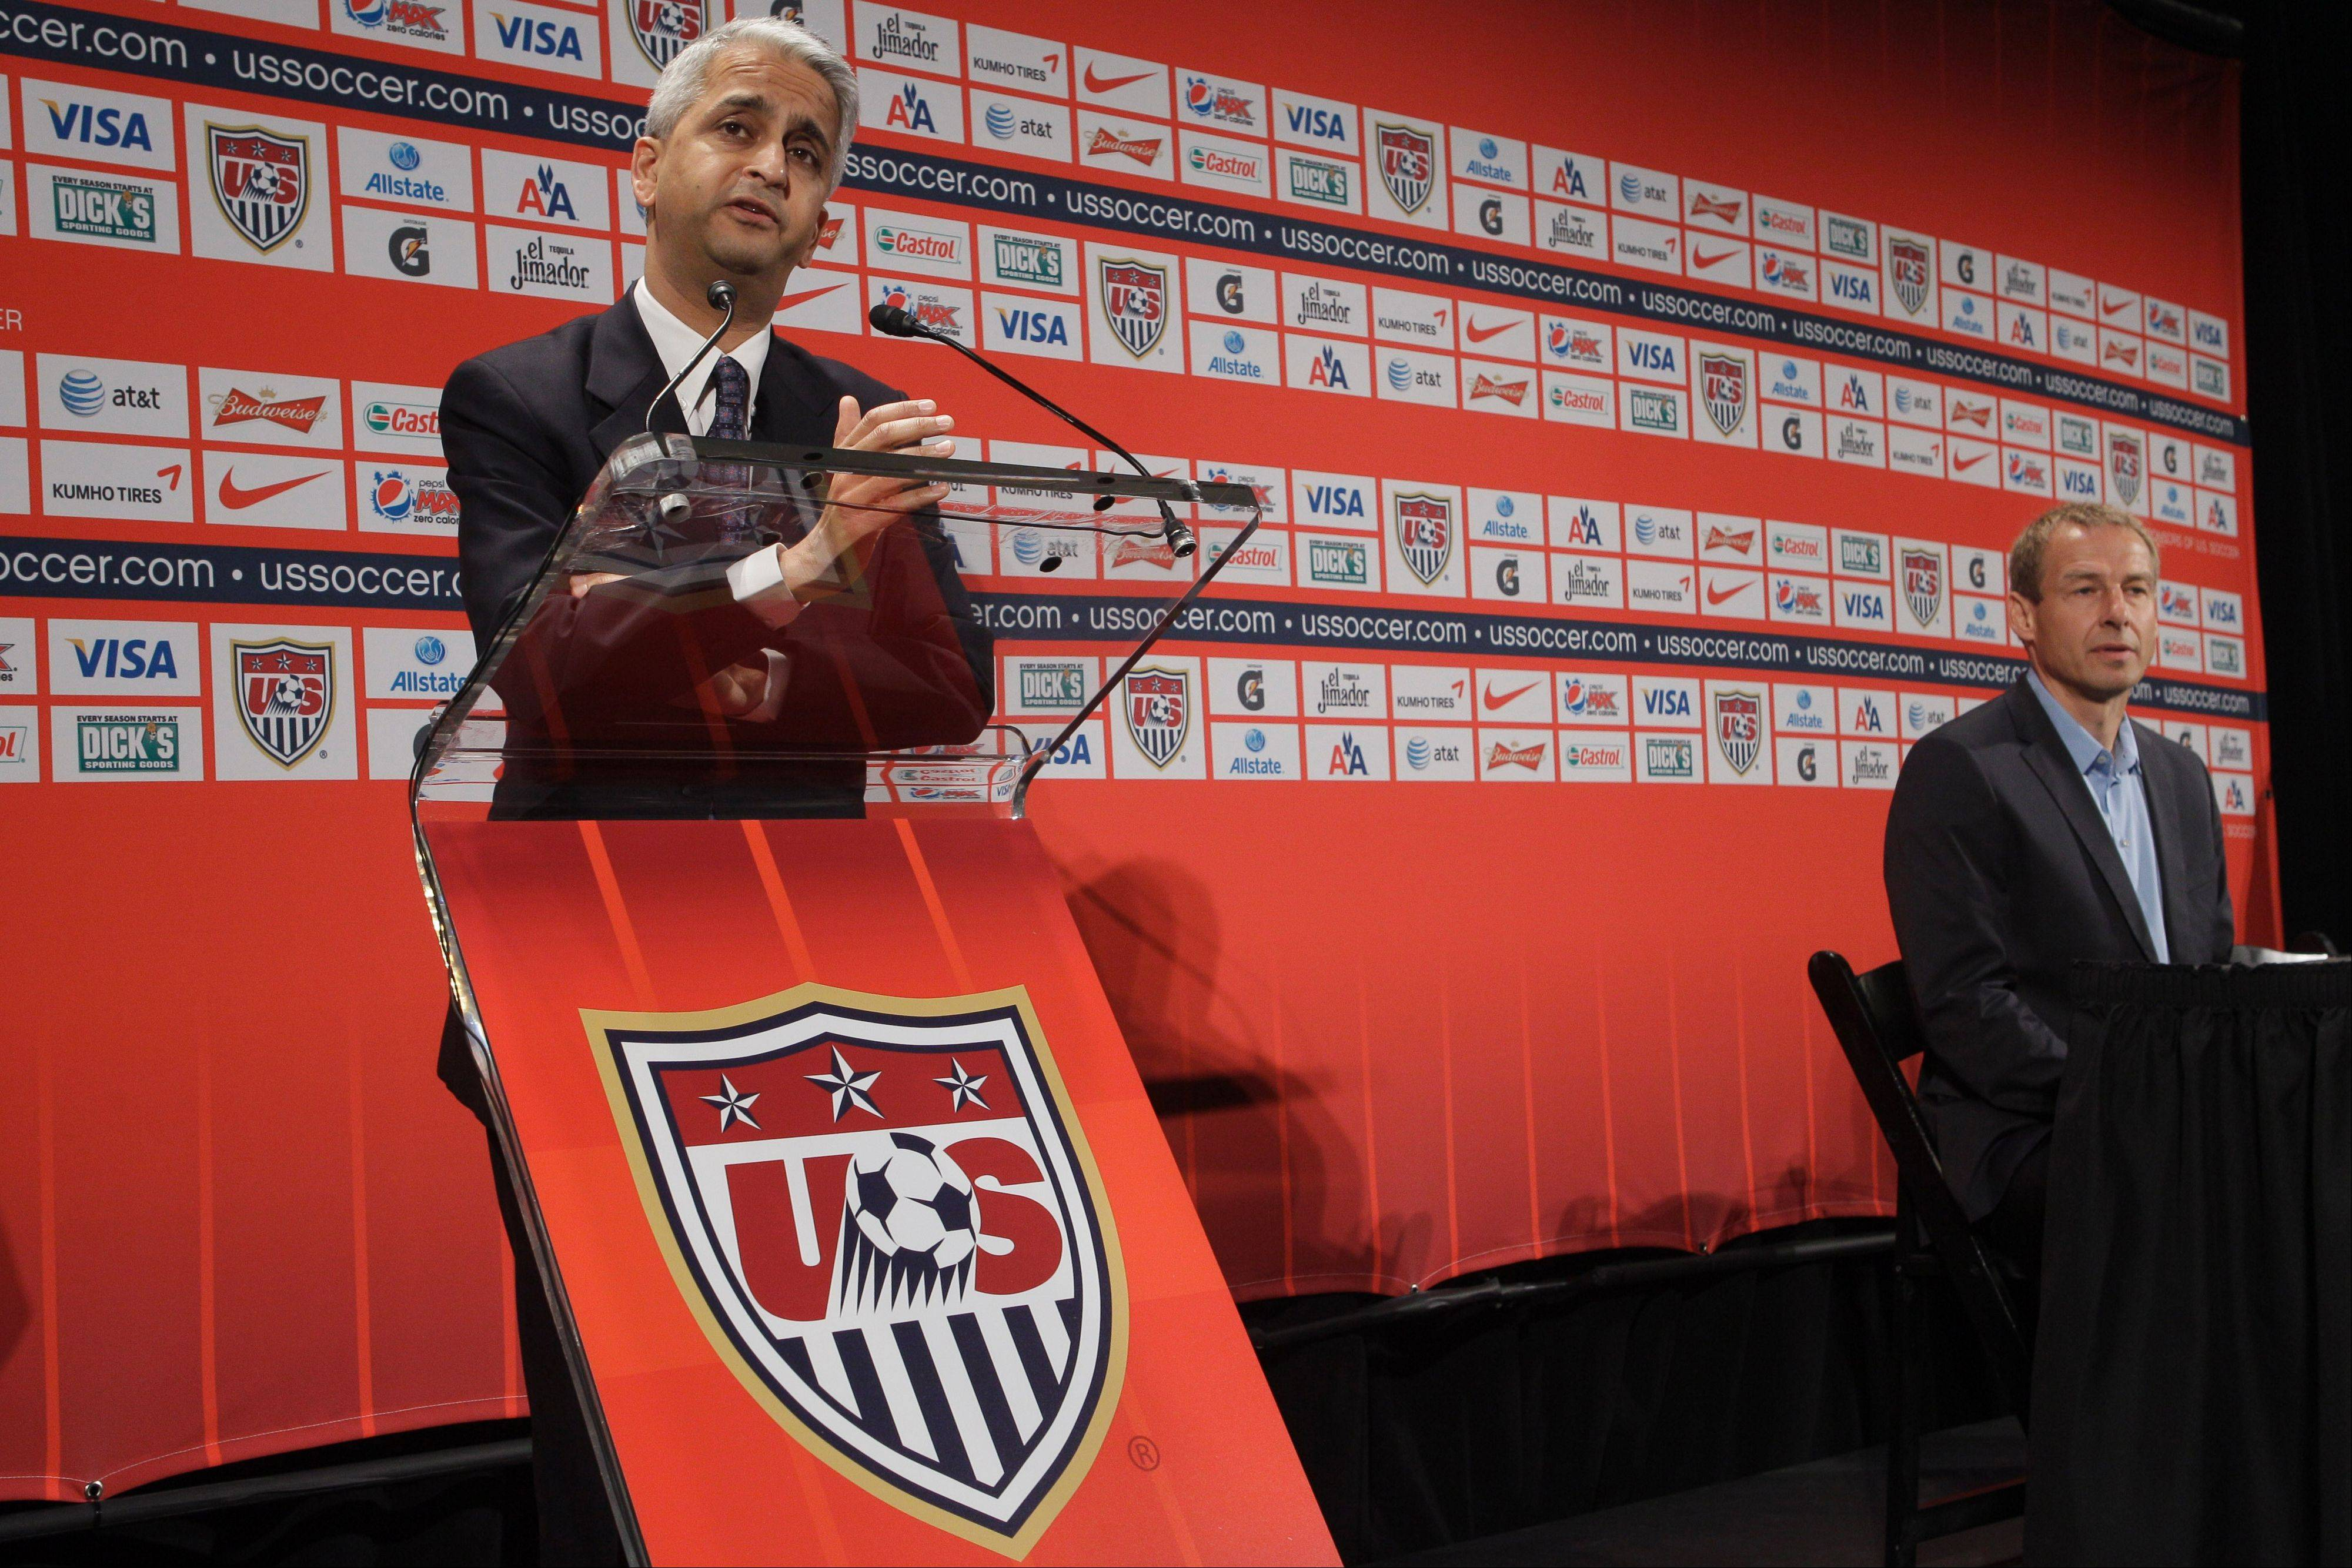 U.S. Soccer President Sunil Gulati, here introducing U.S. men's head coach Juergen Klinsman, will be the key speaker at the Chicago Fire Foundation's annual luncheon to kick off the 2013 MLS season.